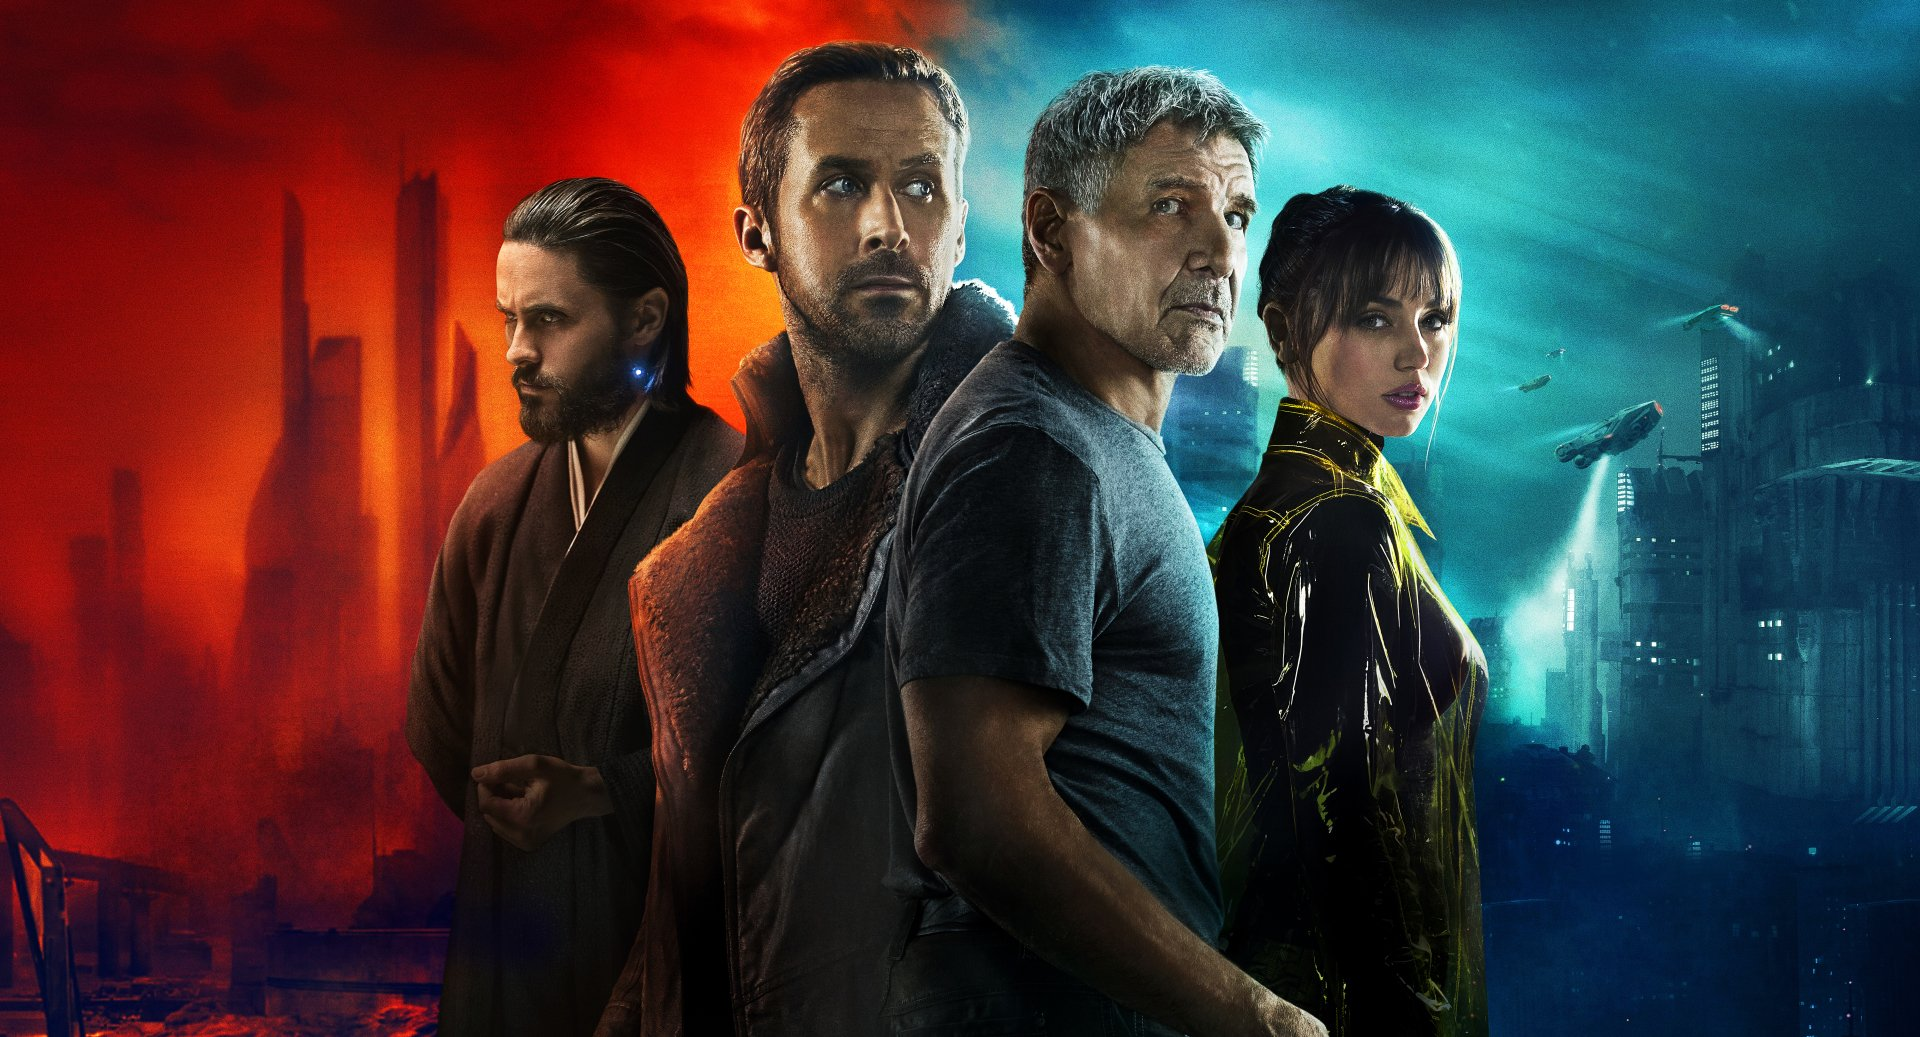 Movie - Blade Runner 2049  Rick Deckard Niander Wallace Blade Runner Harrison Ford Ana de Armas Jared Leto Ryan Gosling Officer K (Blade Runner 2049) Joi (Blade Runner 2049) Wallpaper